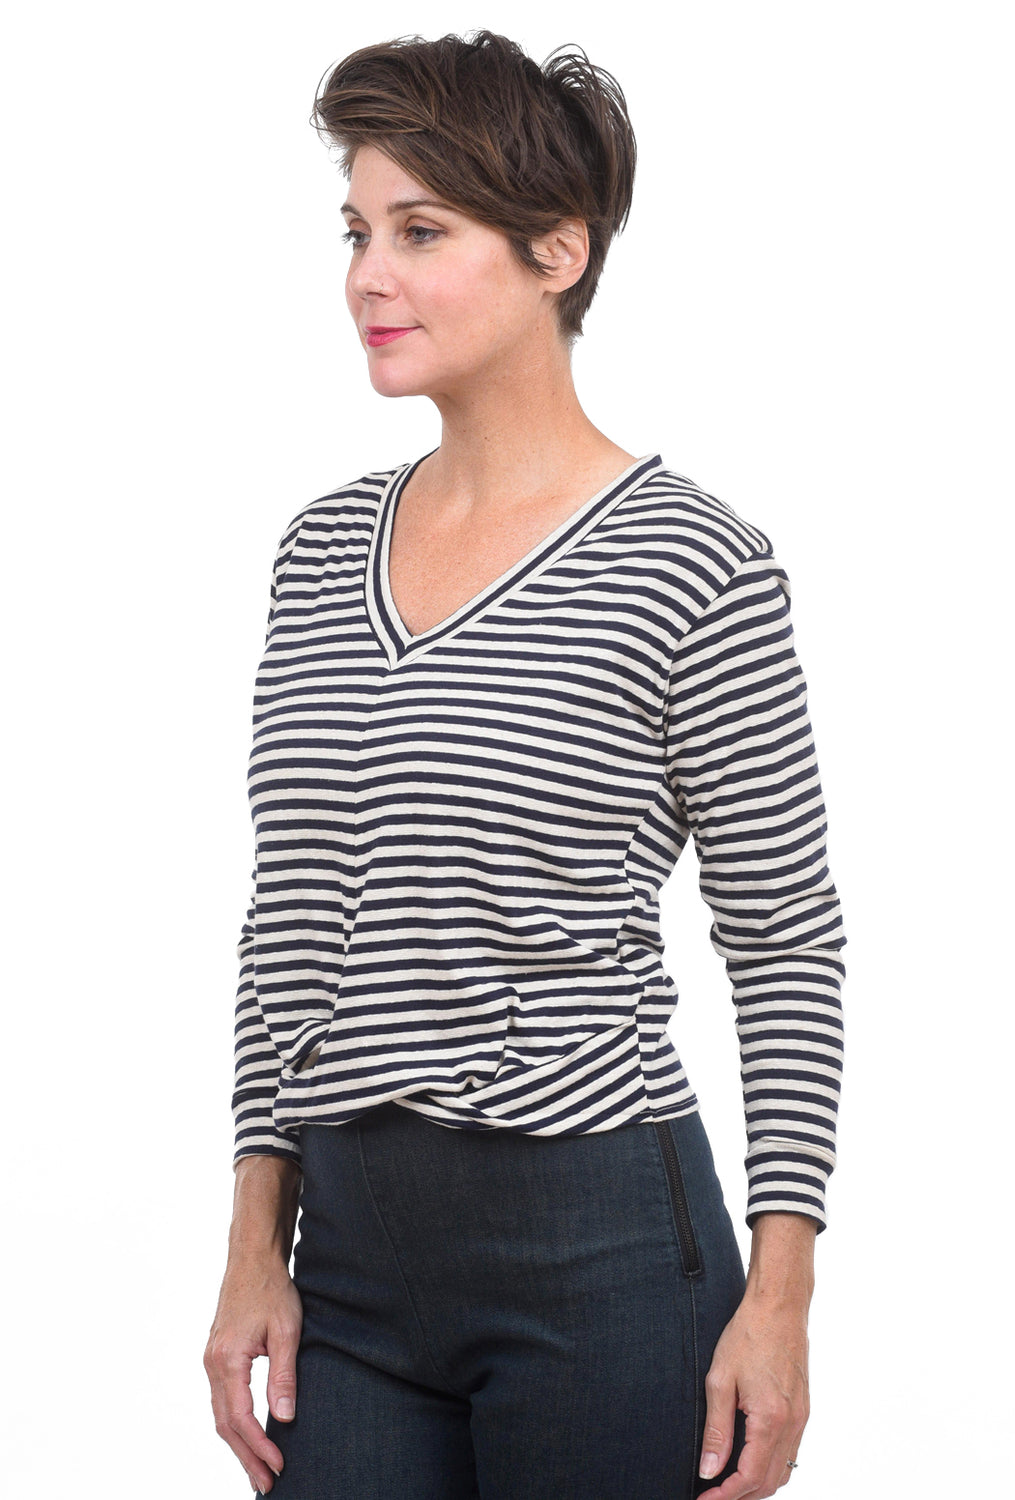 Stark x Twisted Front Top, Navy/Natural